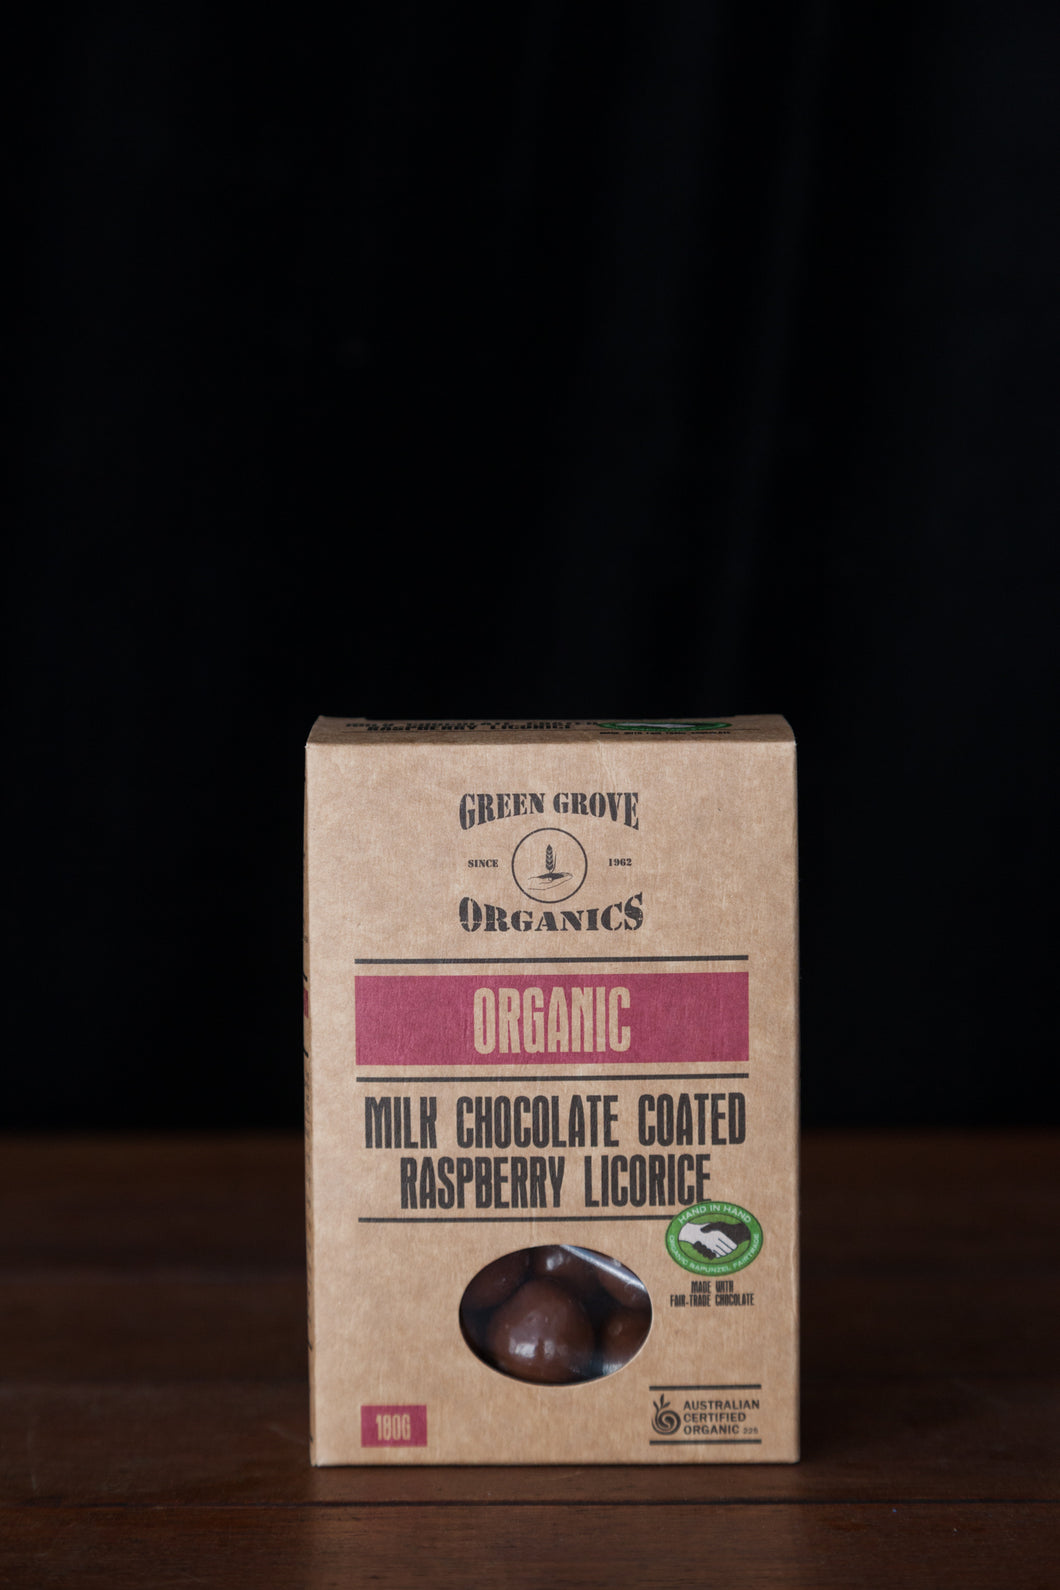 Junee Licorice - Milk Chocolate Coated Raspberry Licorice 180g